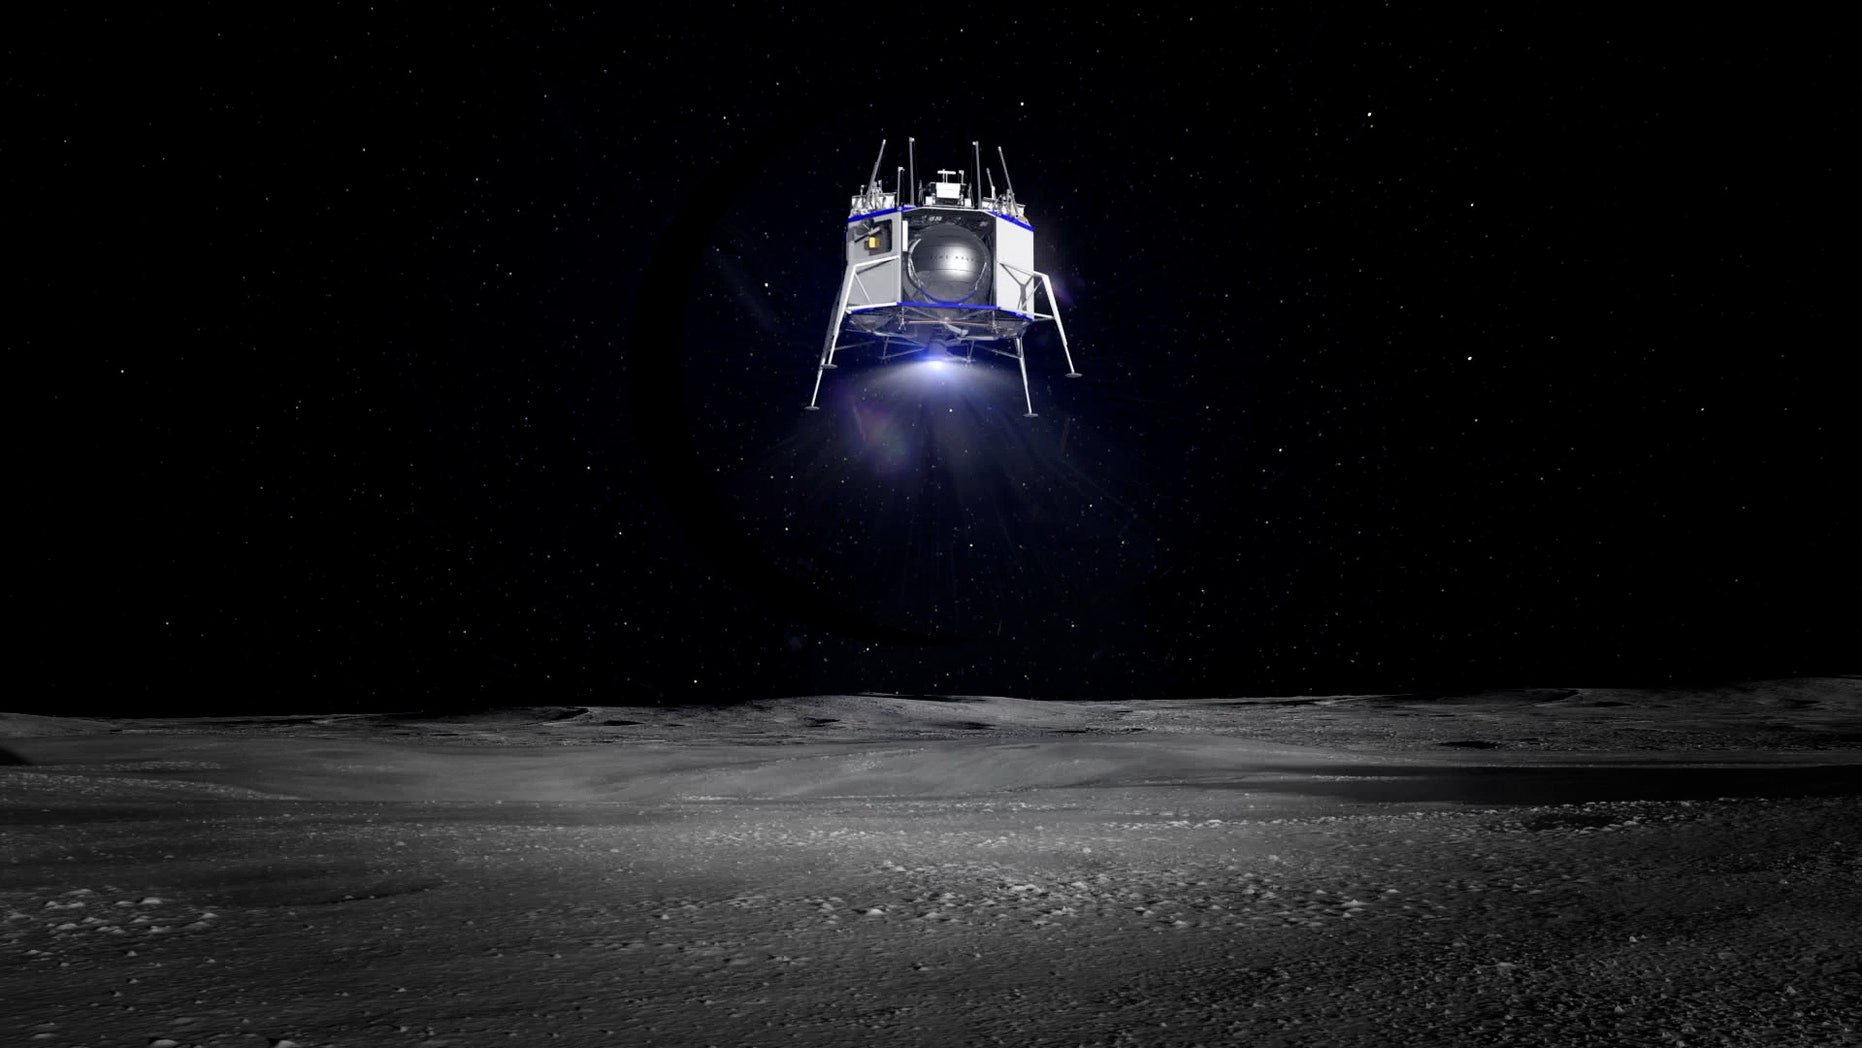 Blue Origin's Blue Moon spacecraft descends to the lunar surface in this still from a mission simulation.